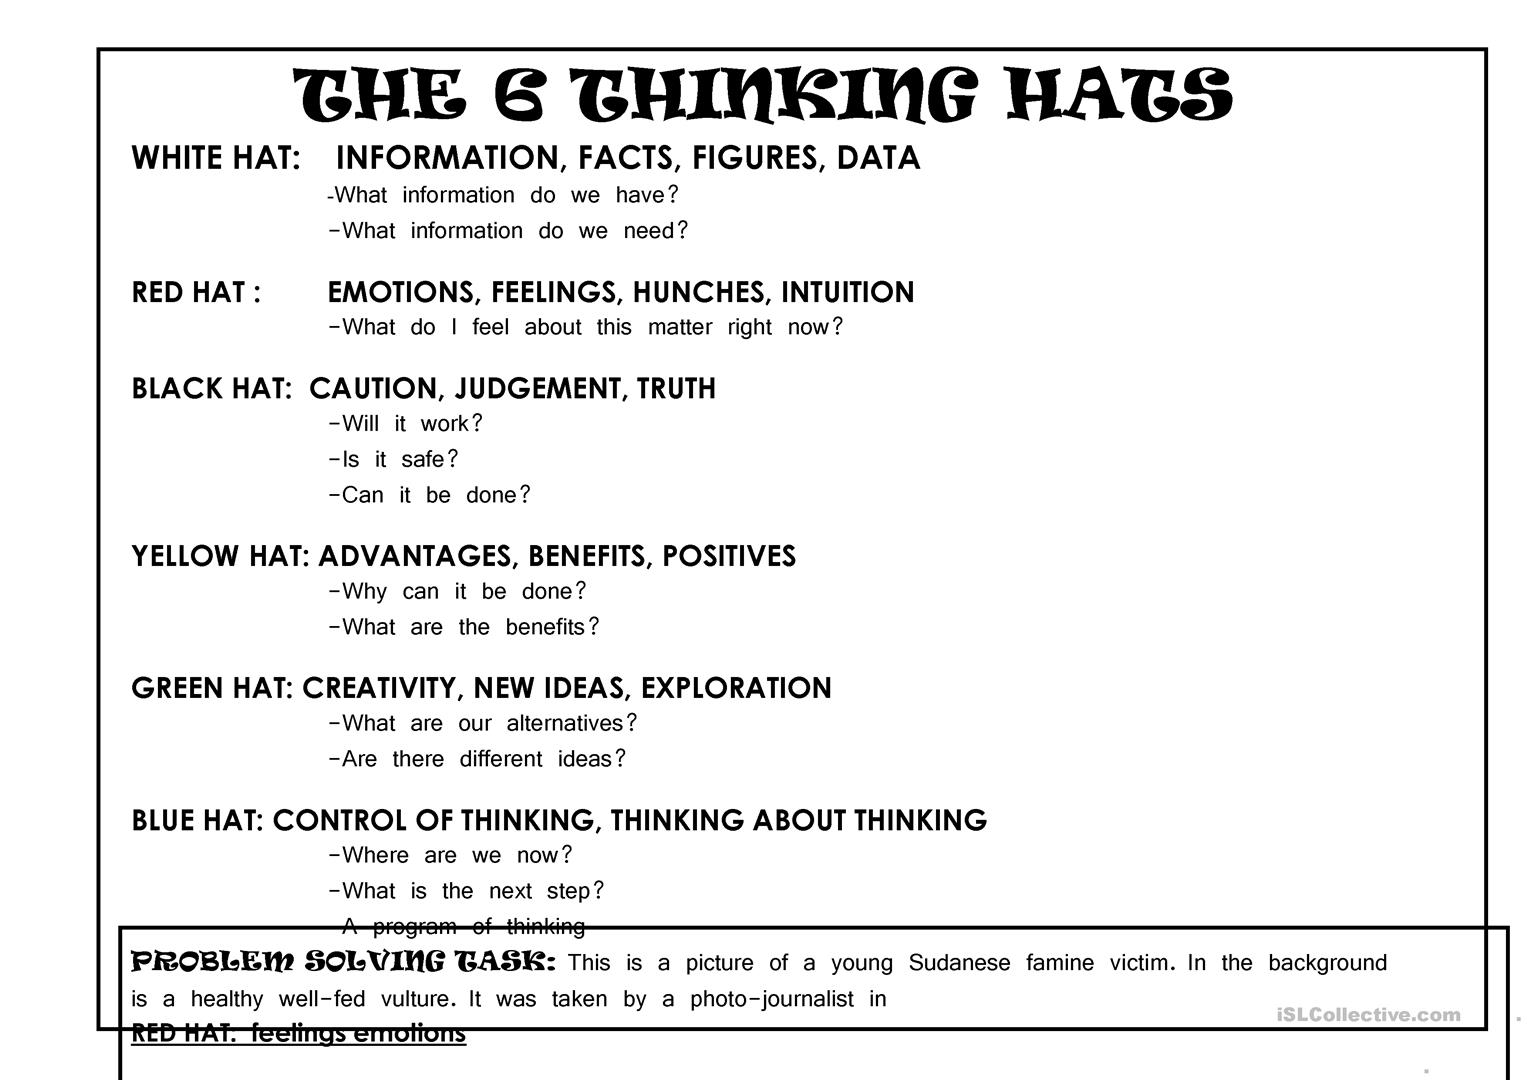 6 Thinking Hats Critical Thinking Lesson